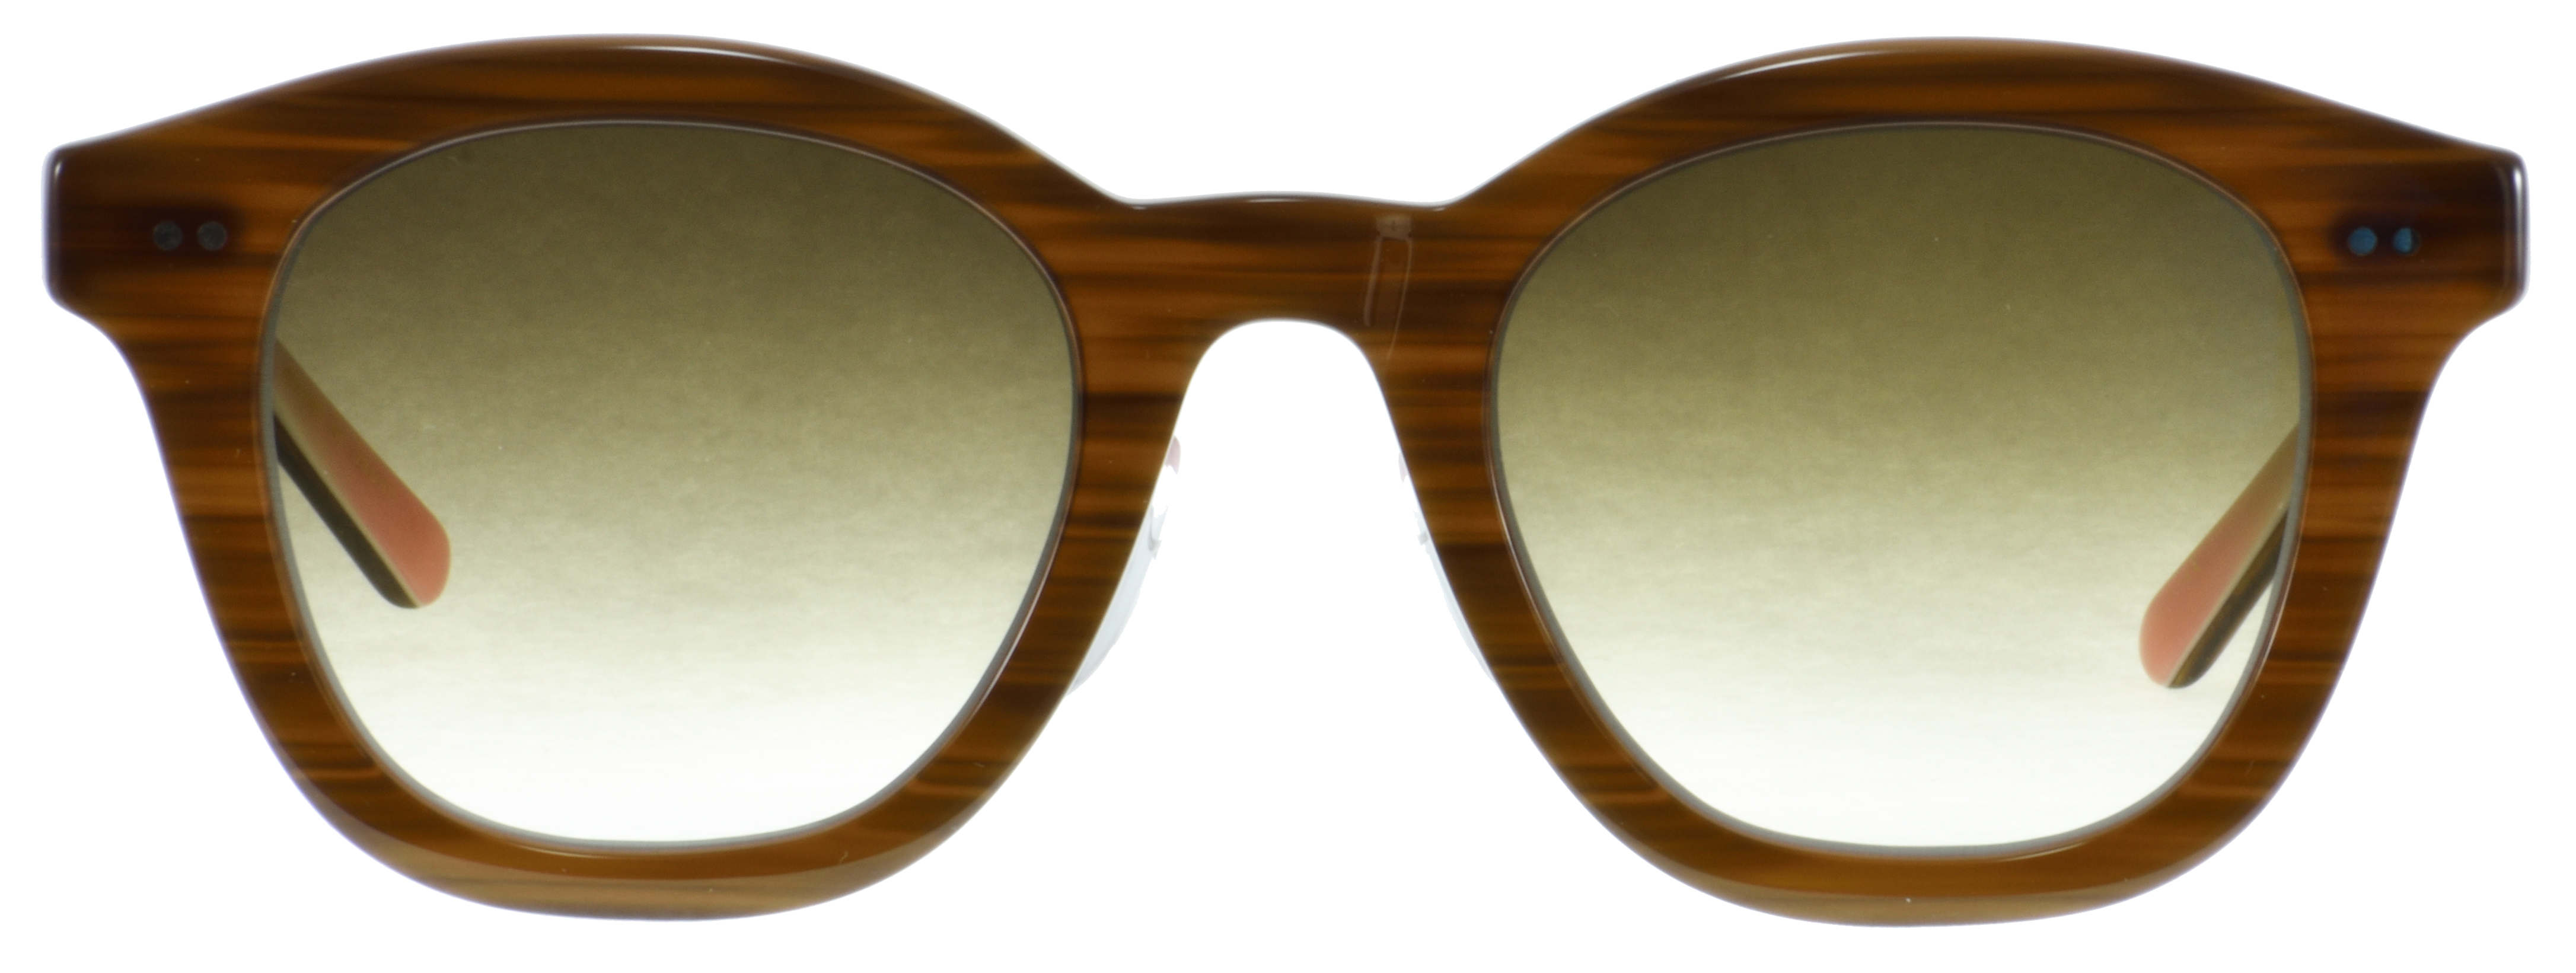 OLIVER PEOPLES EBONEE OTPI-O.G